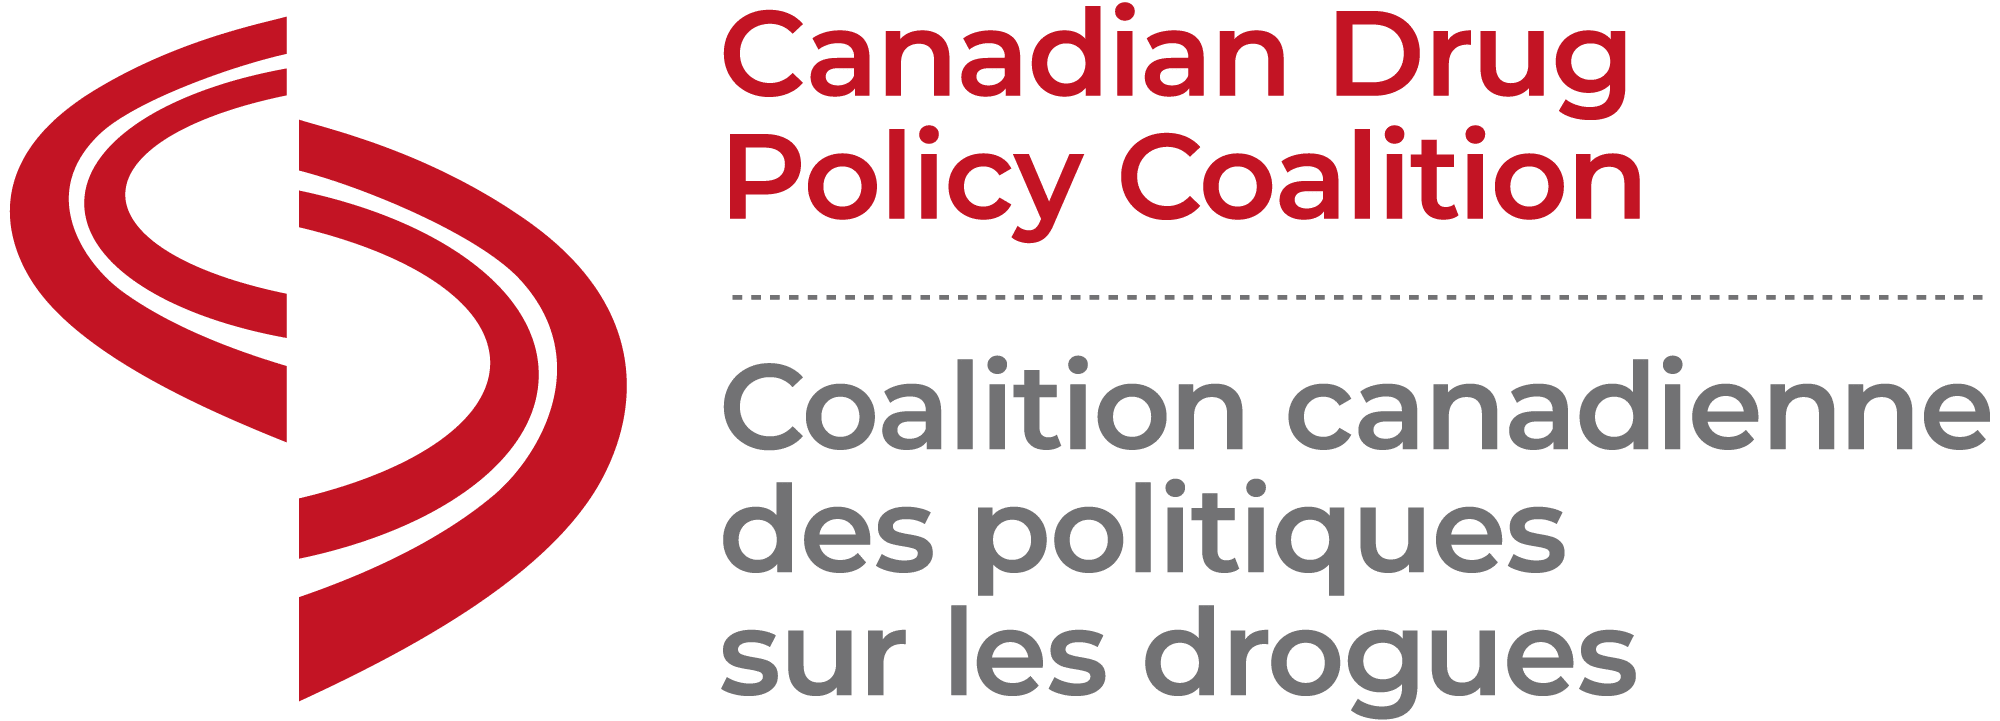 CDPC logo | Canadian Drug Policy Coalition